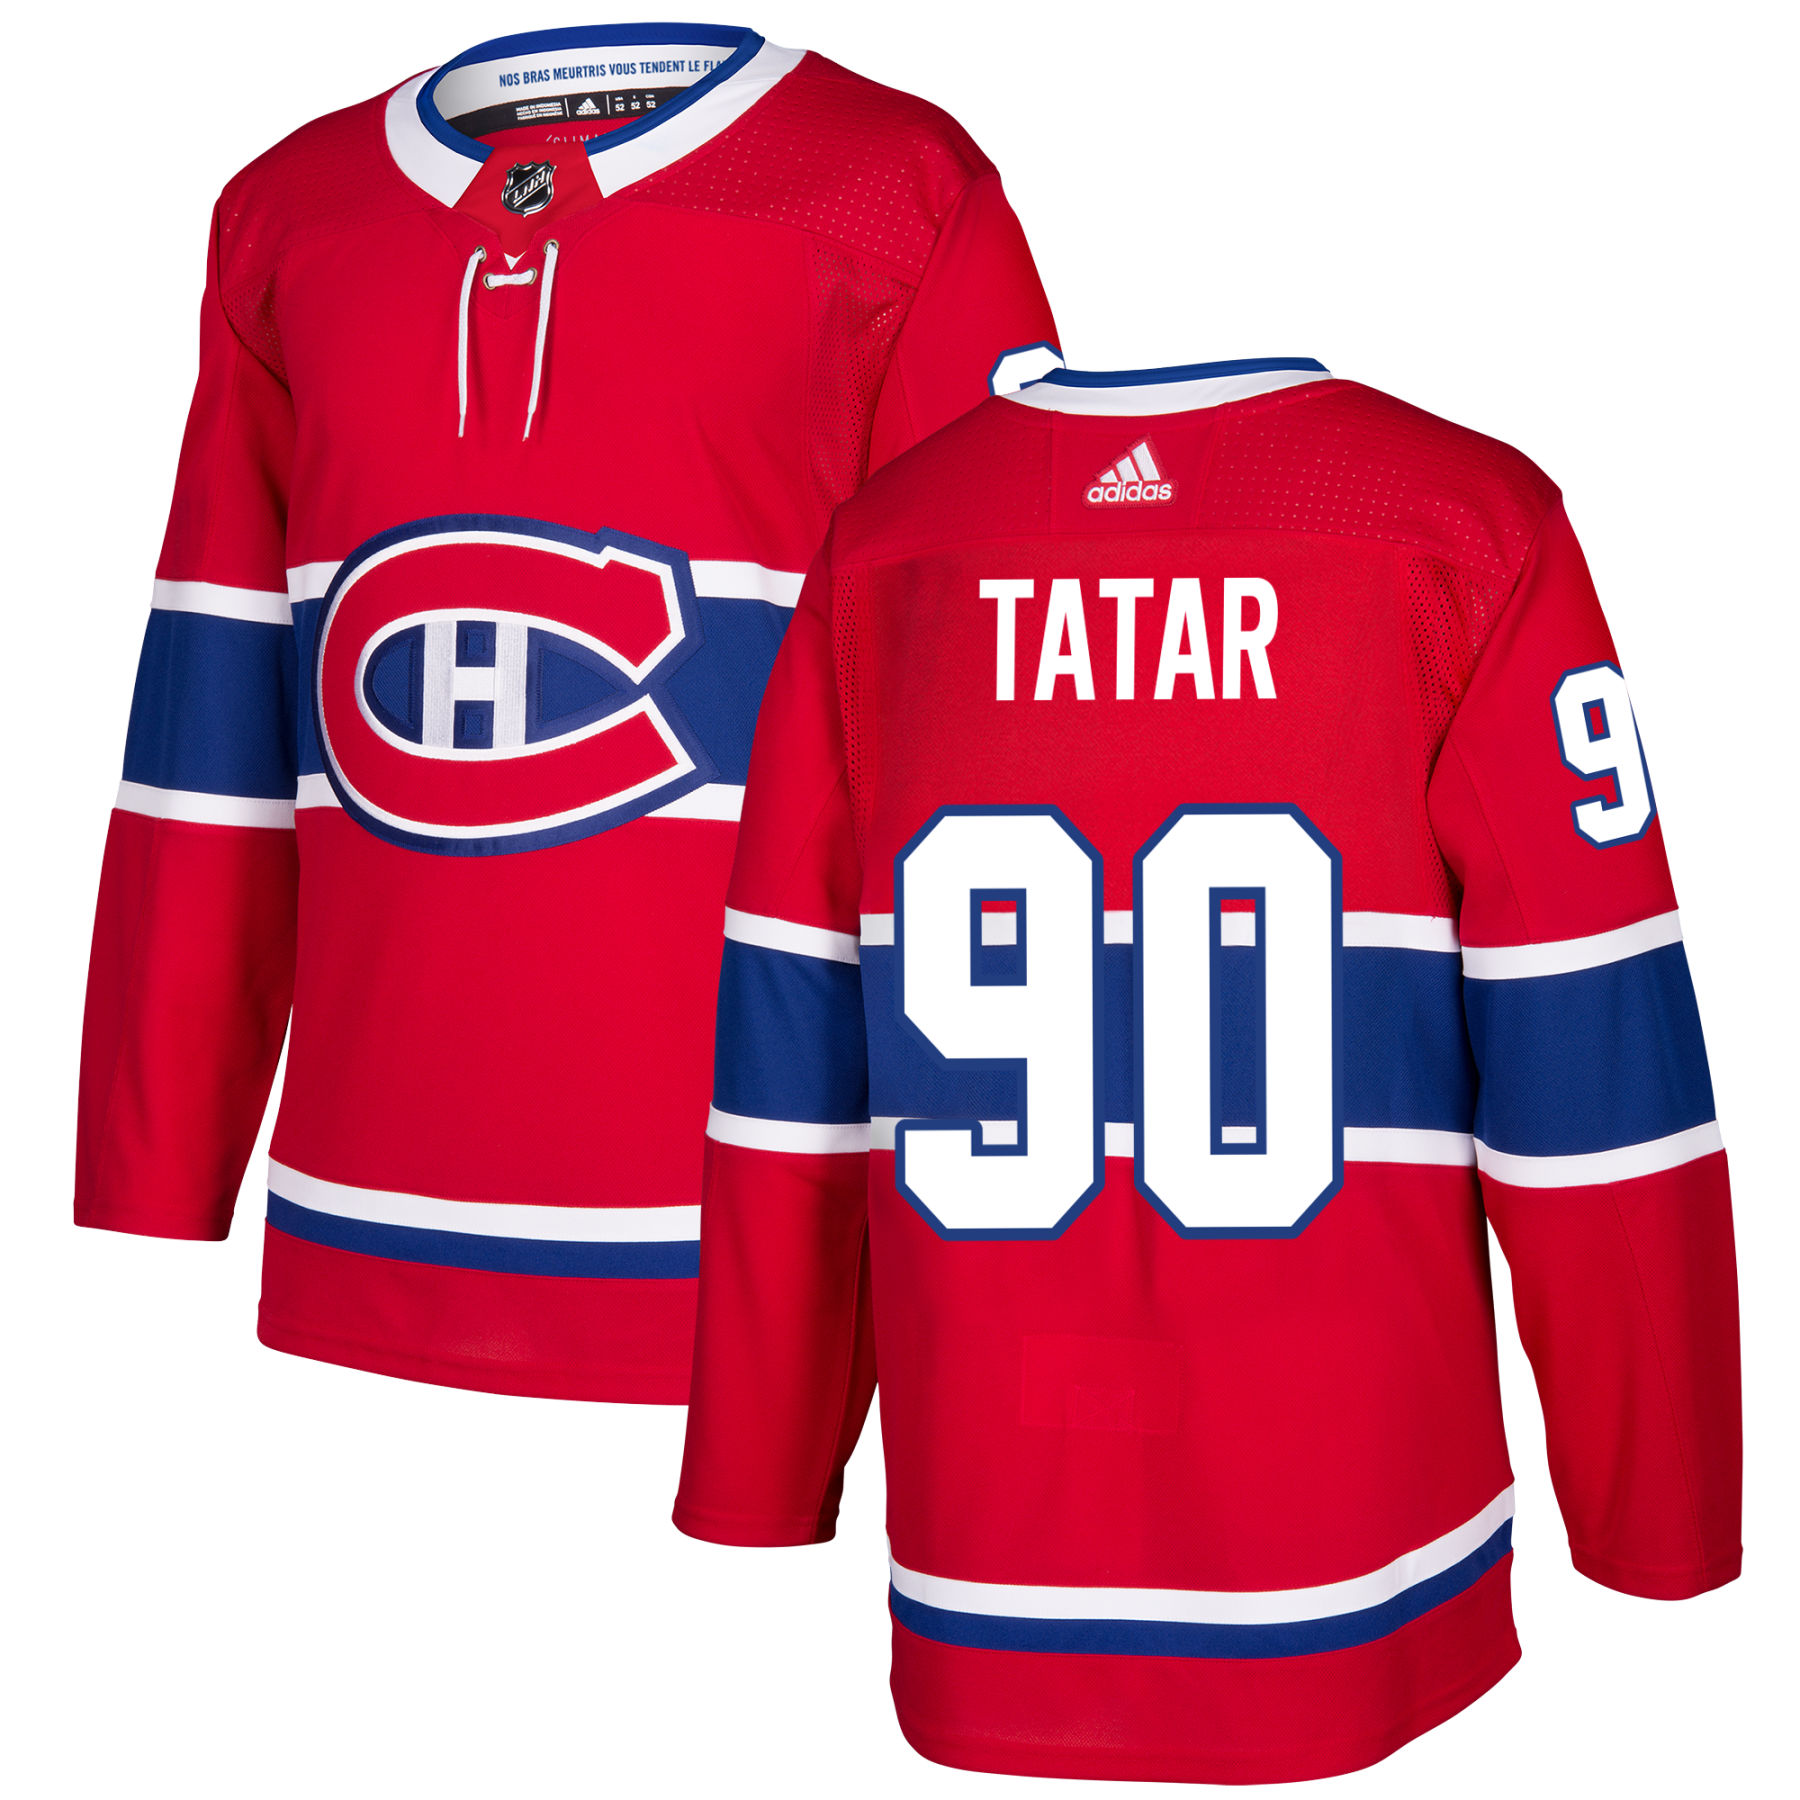 Tomas Tatar Montreal Canadiens Adidas Nhl Authentic Pro Home Jersey Pro Stitched Walmart Canada